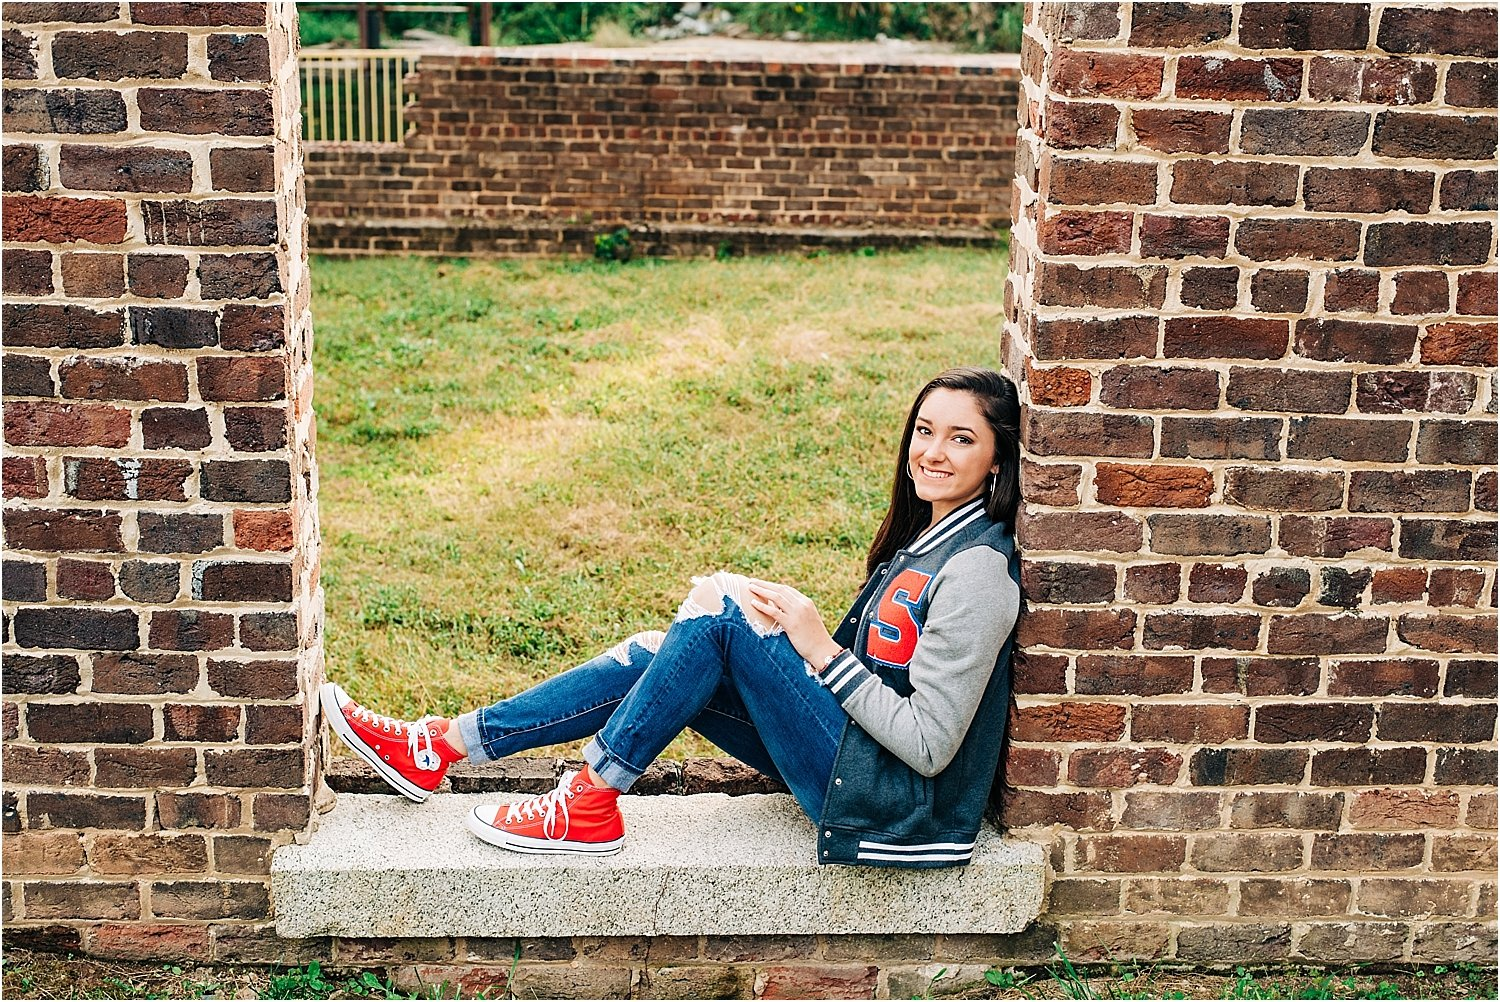 Awesome letter jacket and red high top shoes in this senior portrait.